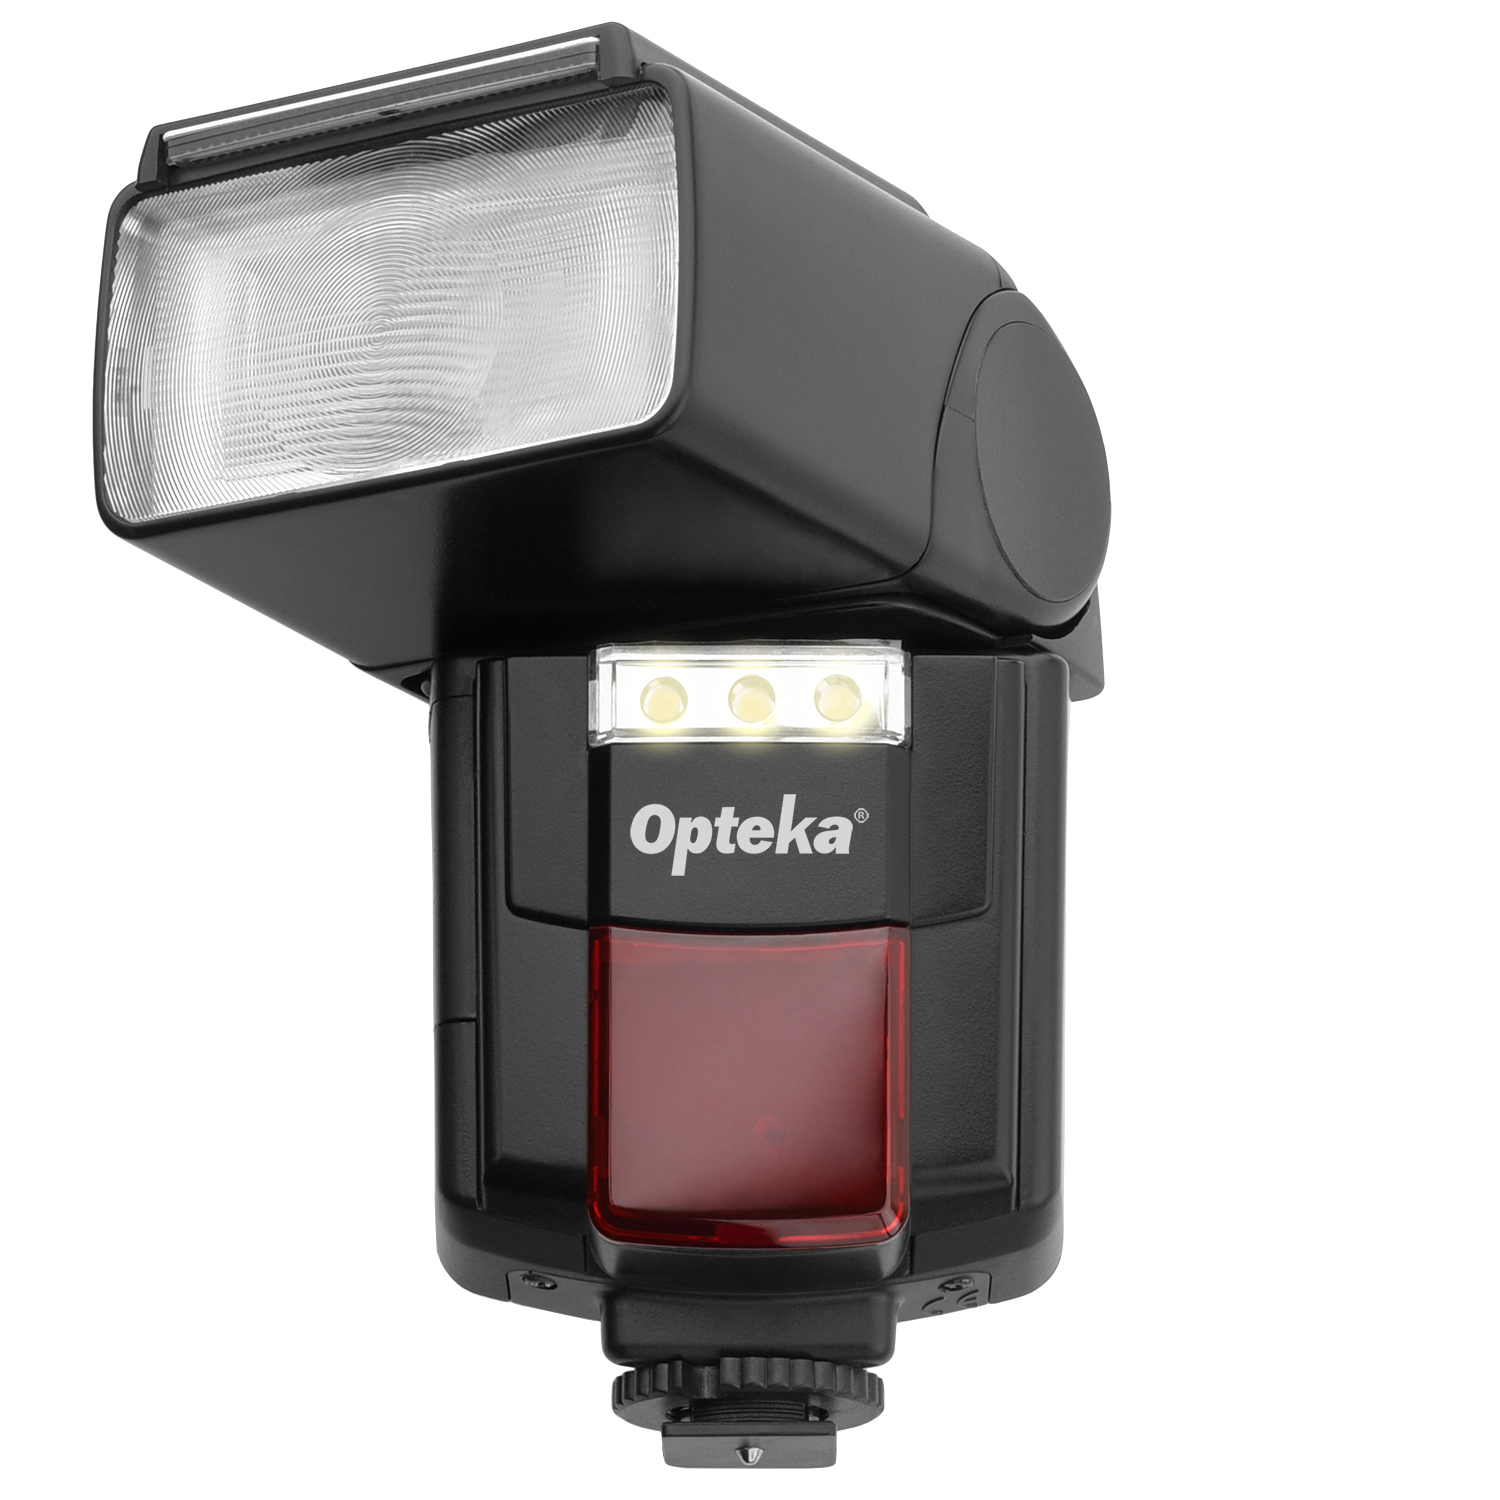 Opteka Flash IF-800 Autofocus Speedlight with Built-In 3-LED Video Light for Canon, Nikon, Pentax, Sony, Panasonic, Olympus, Samsung, Fujifilm, Ricoh DSLR and Digital Cameras with Standard Hot Shoe